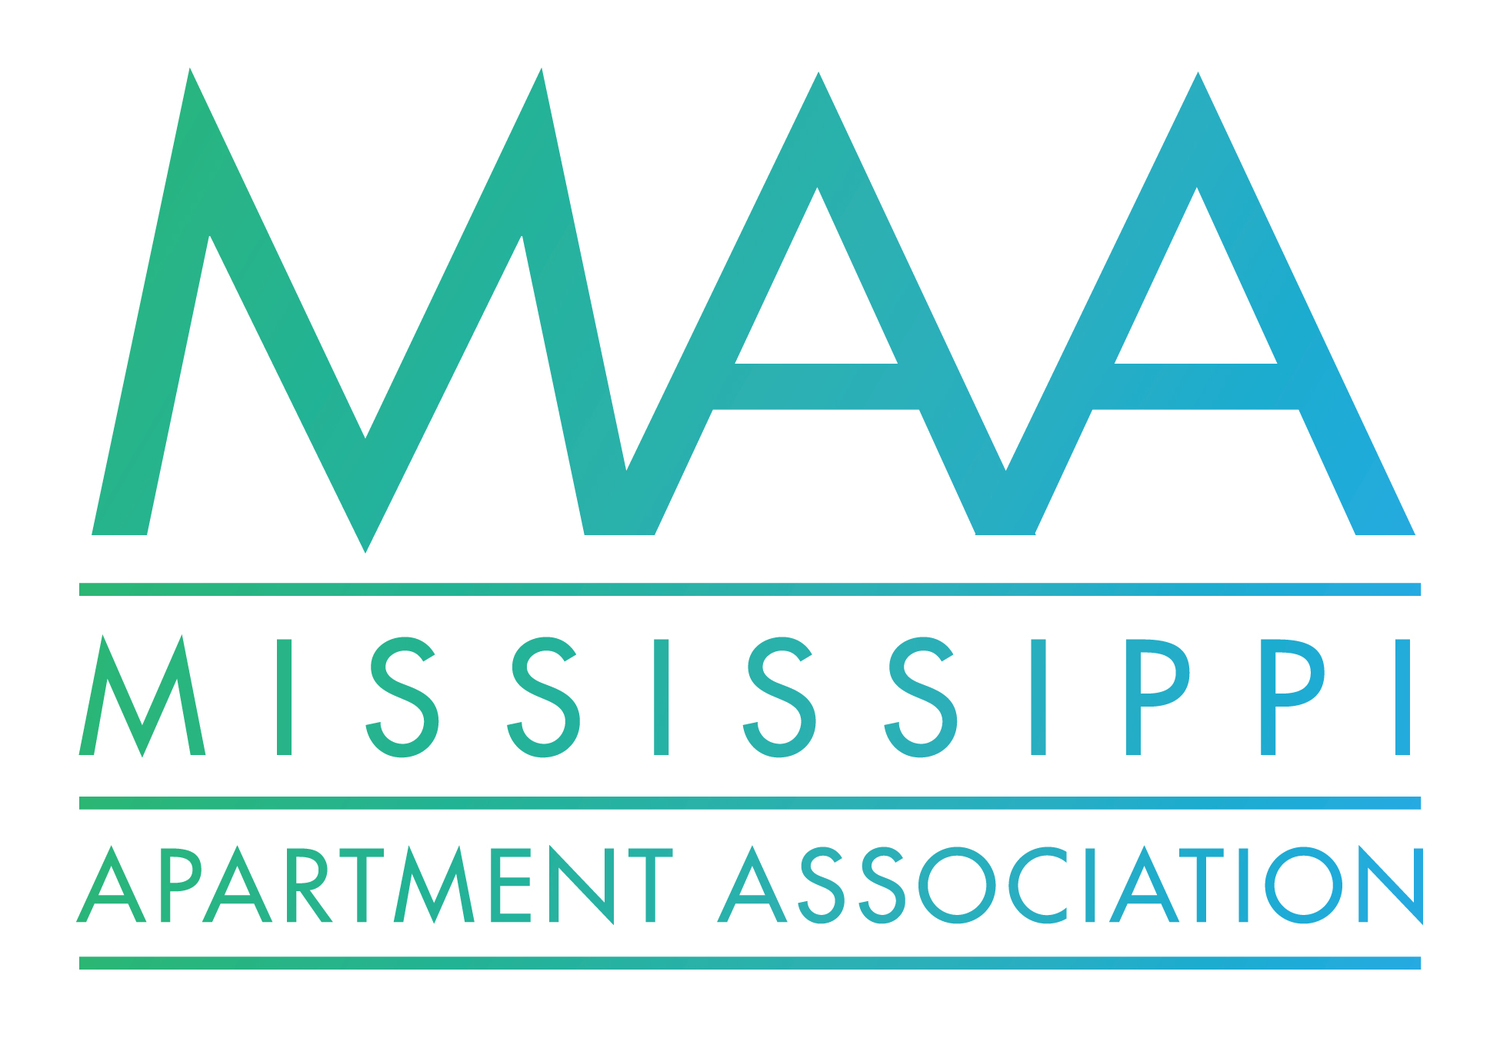 MS Apartment Association Home Page